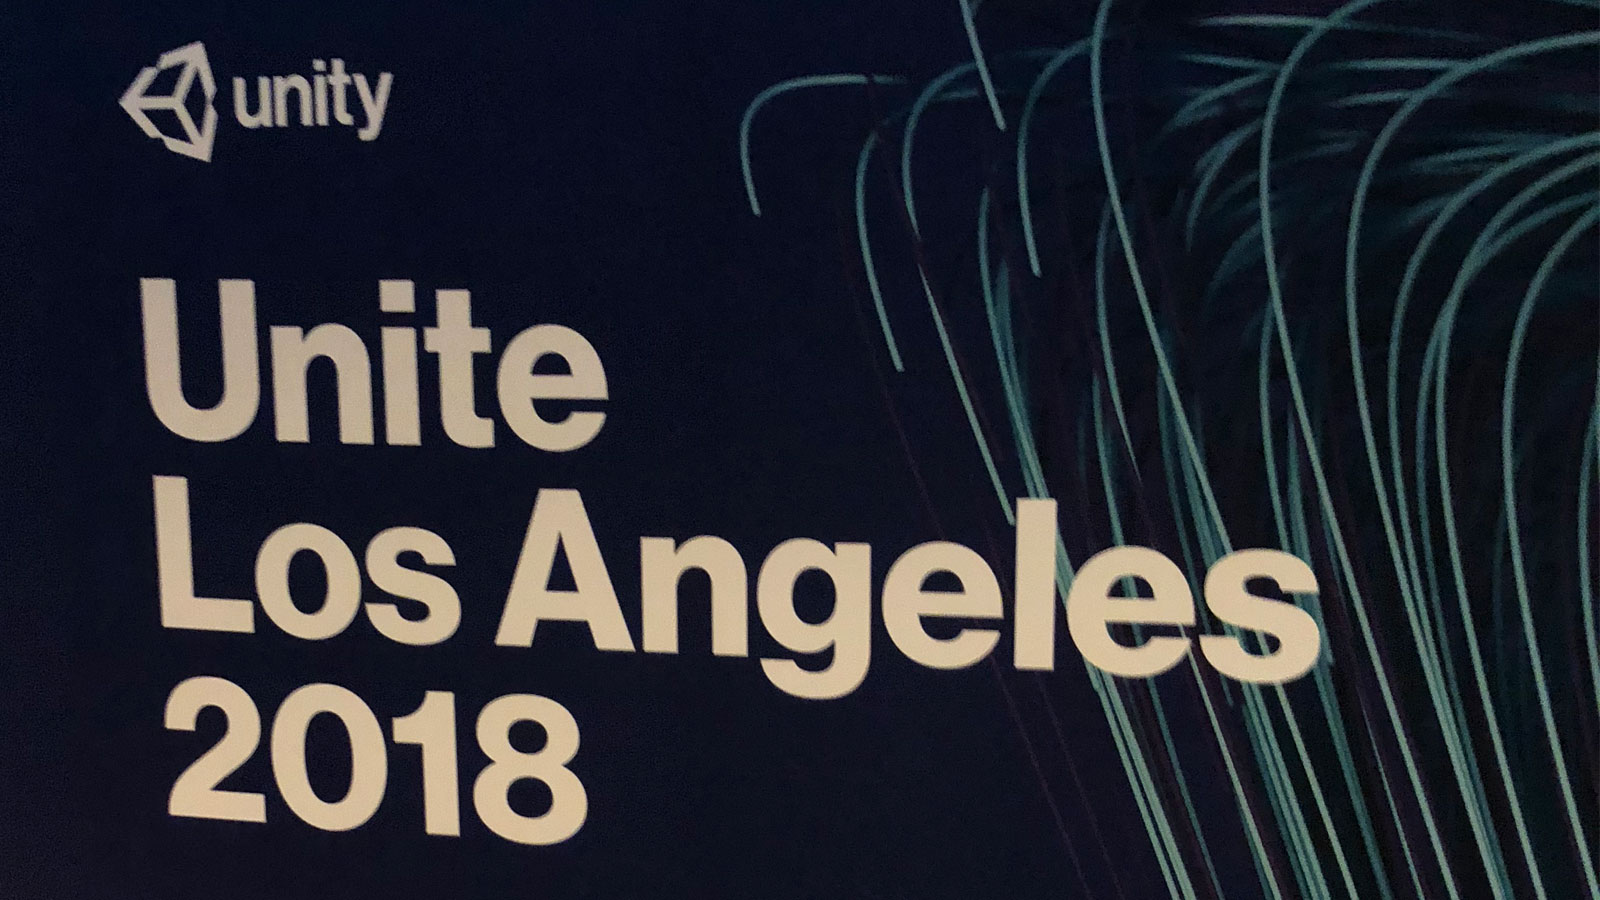 My Experience At The Unite LA